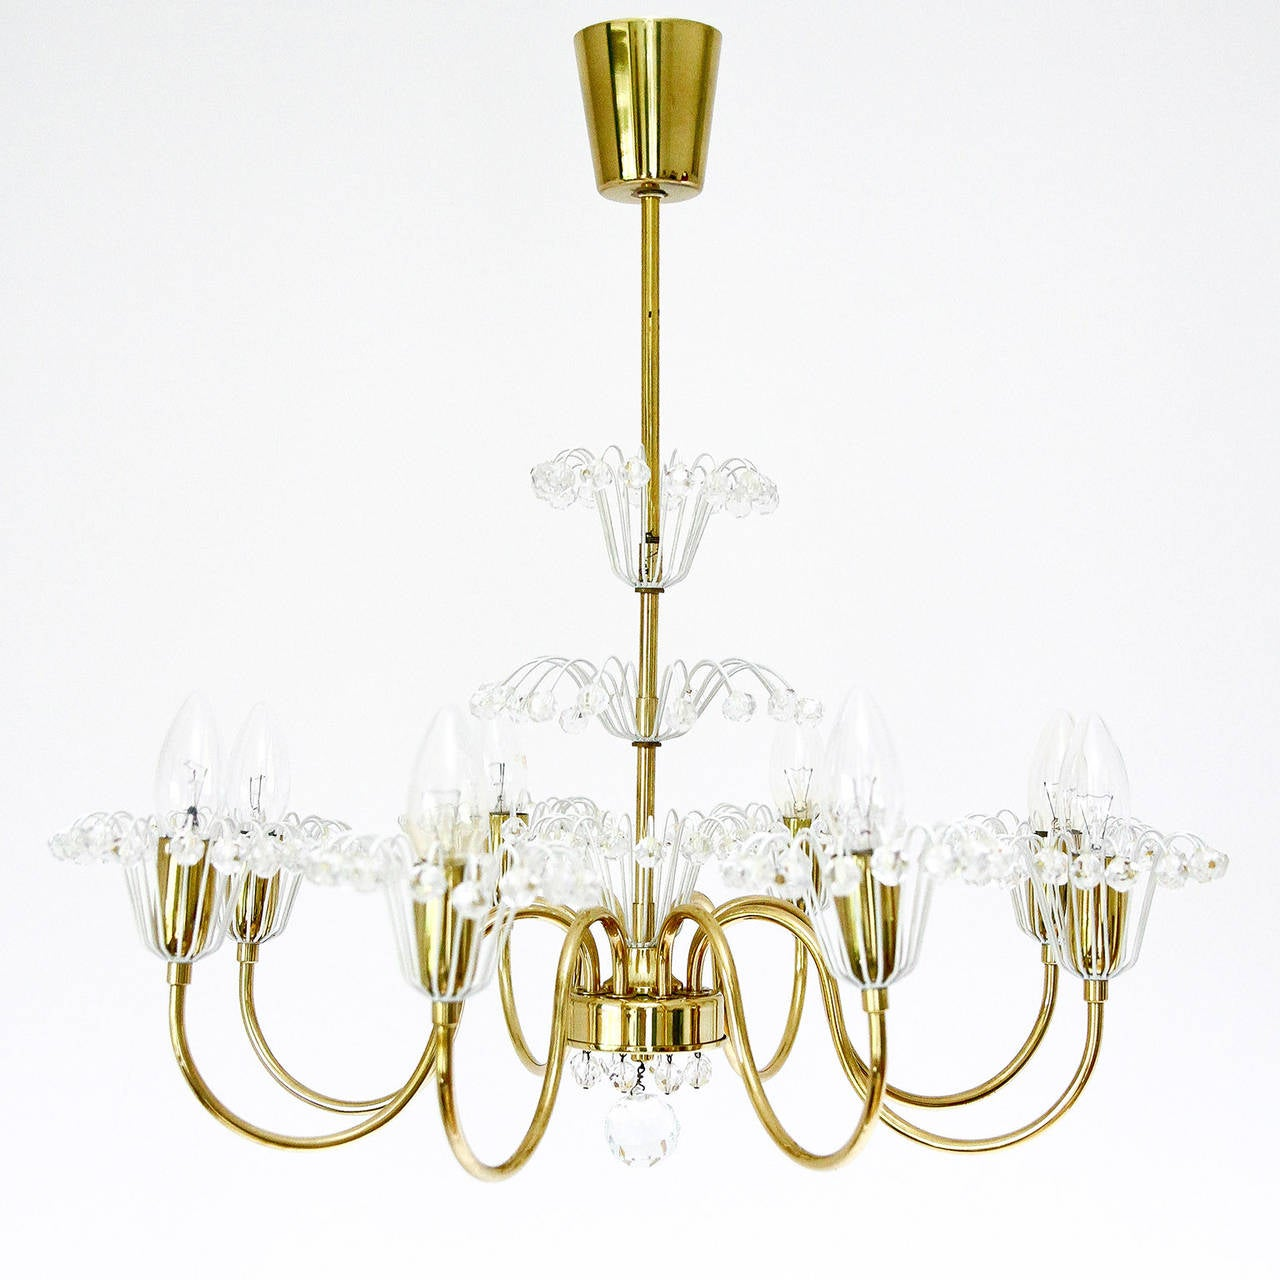 A very beautiful floral eight-arm chandelier designed by Emil Stejnar for Rupert Nikoll, Vienna Austria, manufactured in Mid-Century, circa 1950.  It is made of brass and many small cut crystal glass crystal. The light has eight sockets for E14